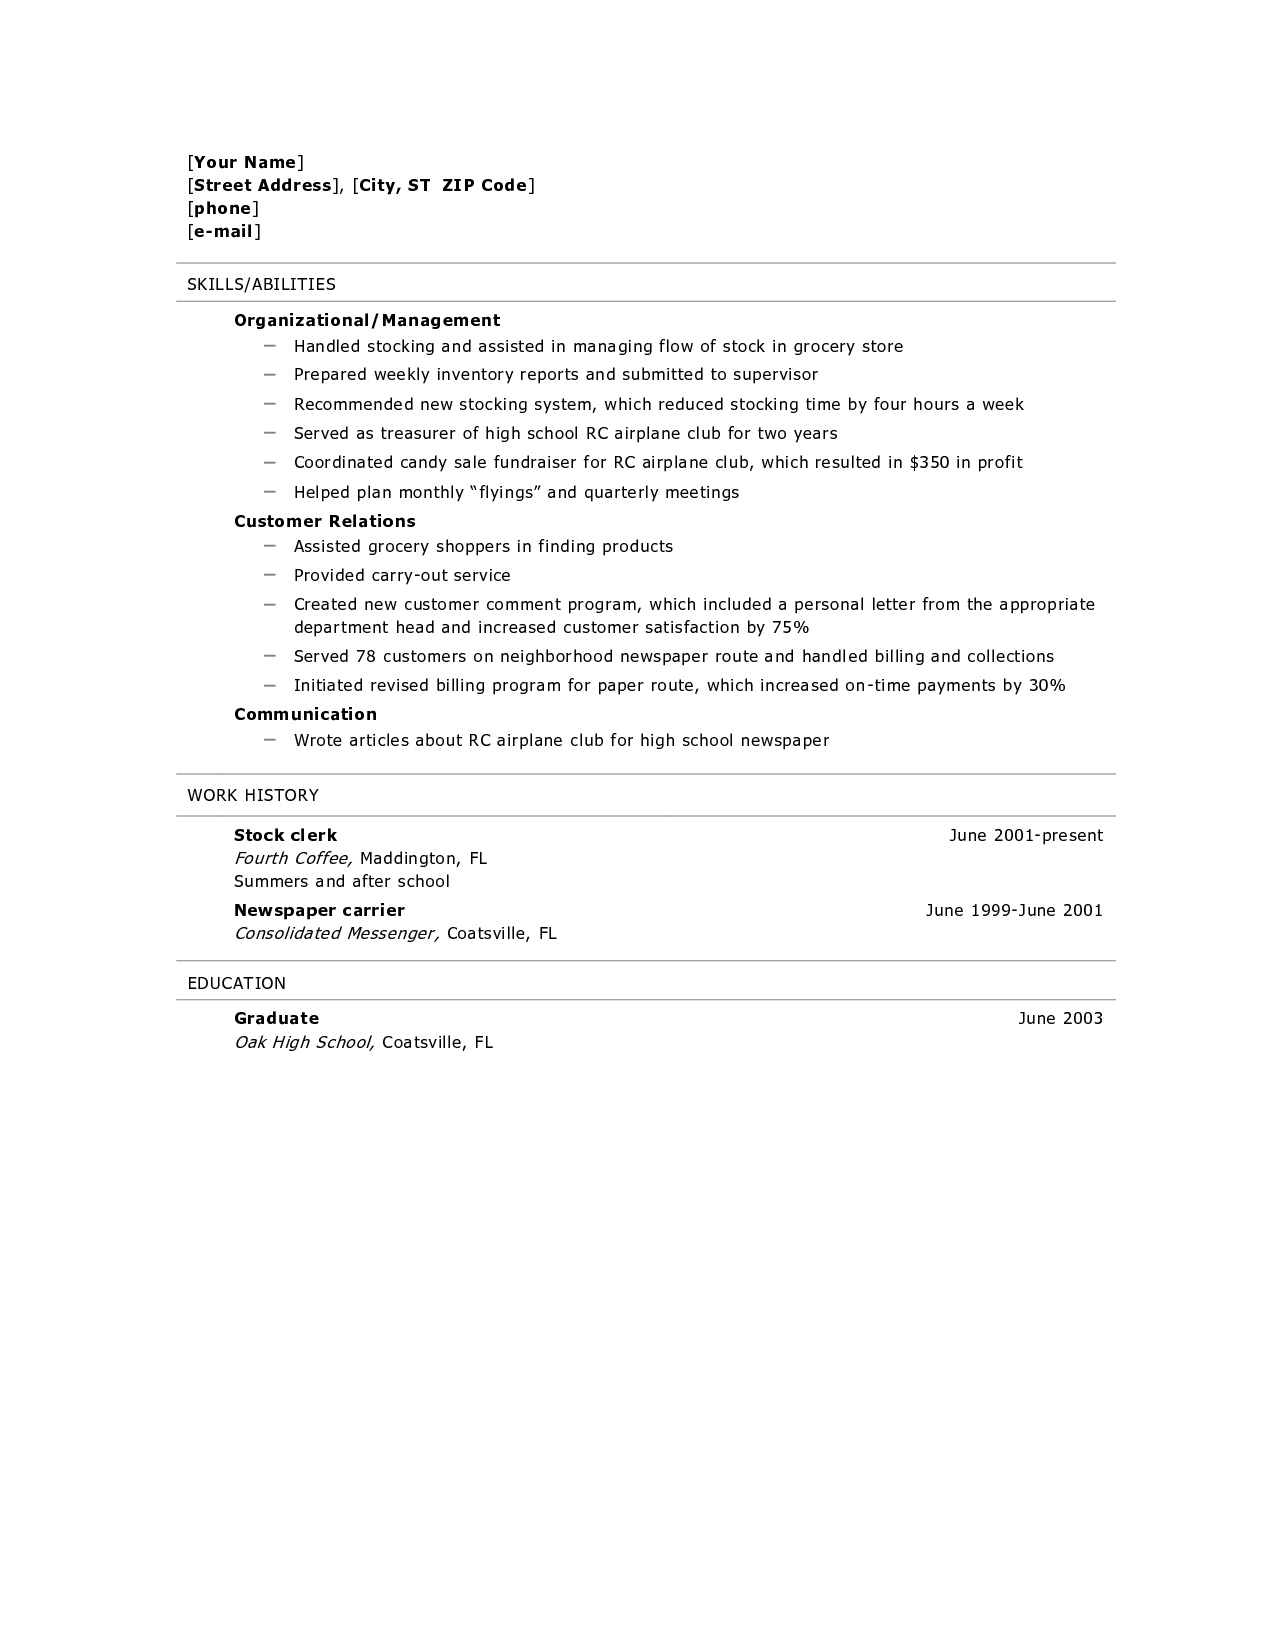 resume for high school graduate resume builder resume templates httpwww - Sample Resume For High School Graduate